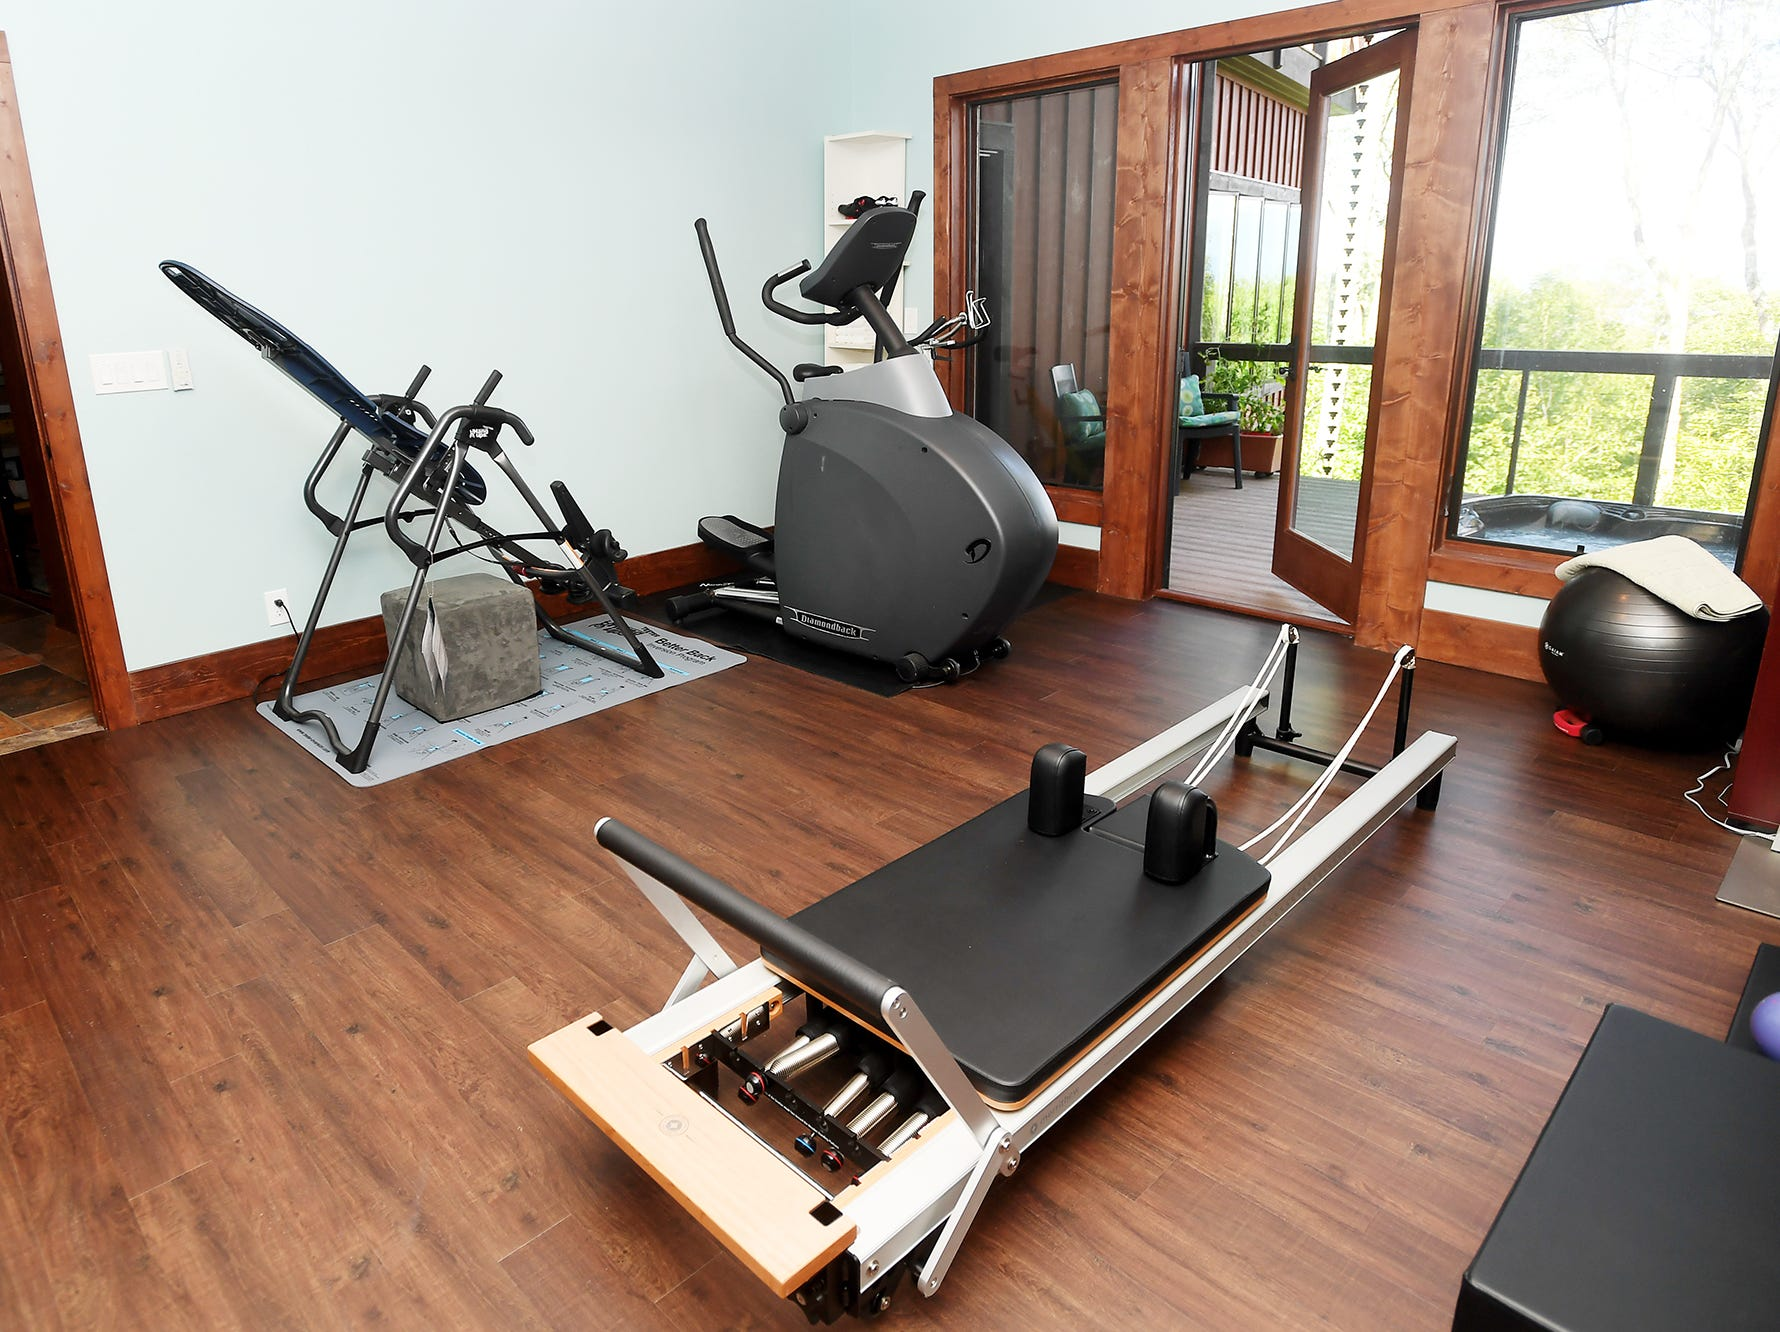 The gym on the basement floor of Jim and Sabrina Watson's Balsam Mountain Preserve home in Jackson County.